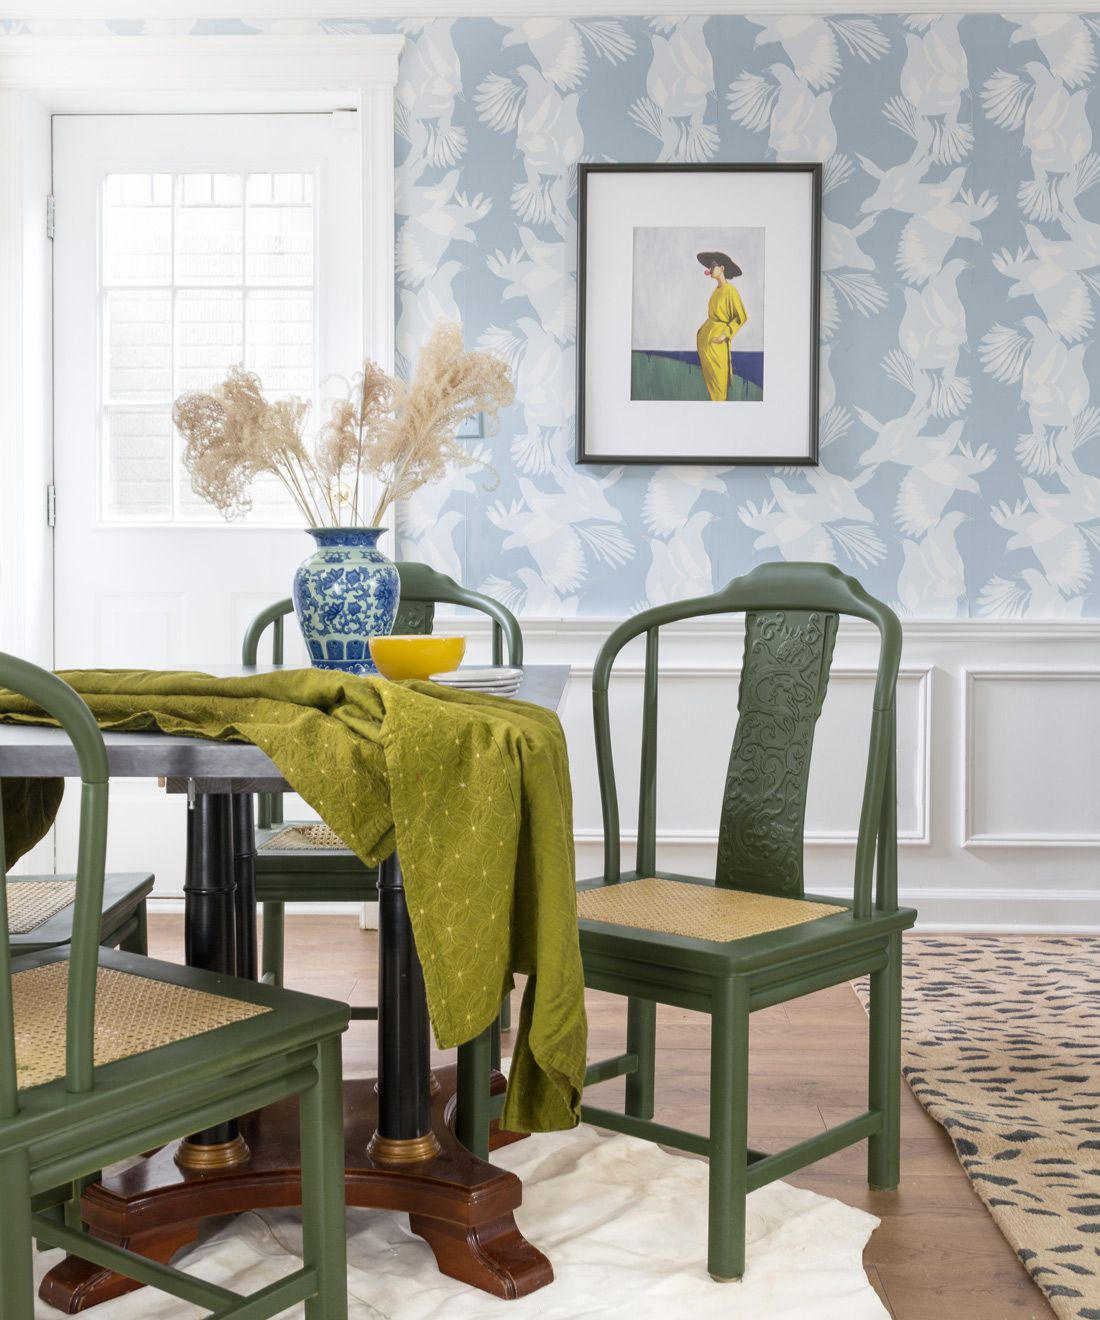 Magpie Wallpaper • Australia Collection by Kingdom Home • Blue Wallpaper • Bird Wallpaper • Photo by Jewel Marlowe • Table setting with two green chairs in front of a wall covered in wallpaper on the top with wainscoting on the bottom